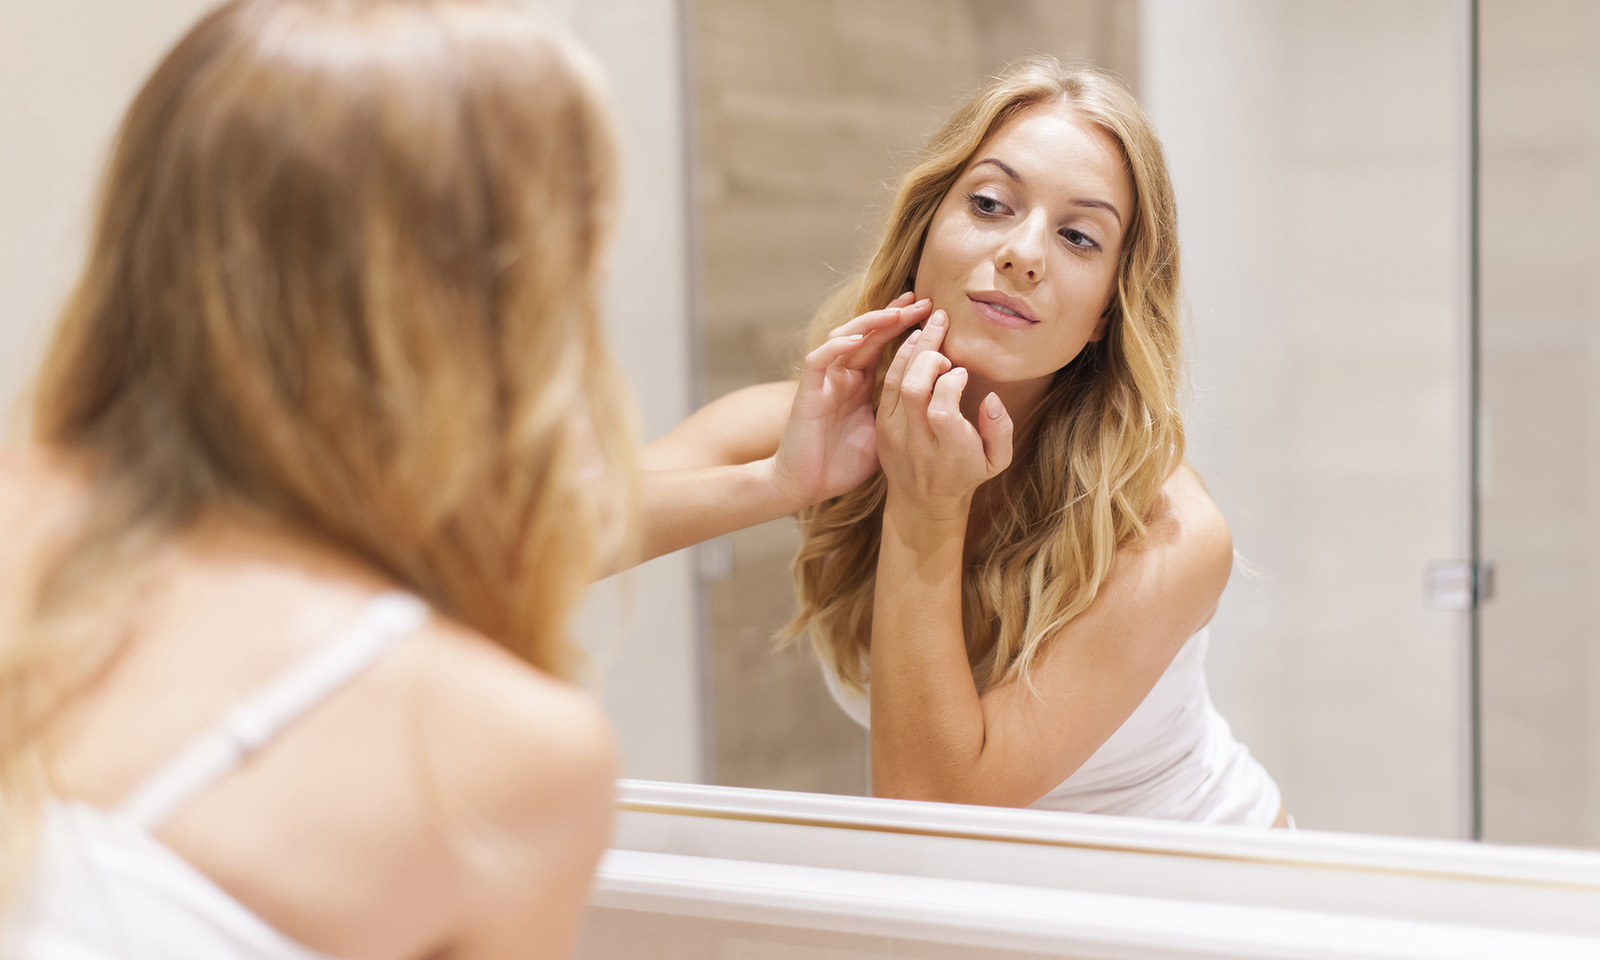 the-right-way-to-wash-your-face-to-avoid-skin-complications-woman-touching-face-in-mirror